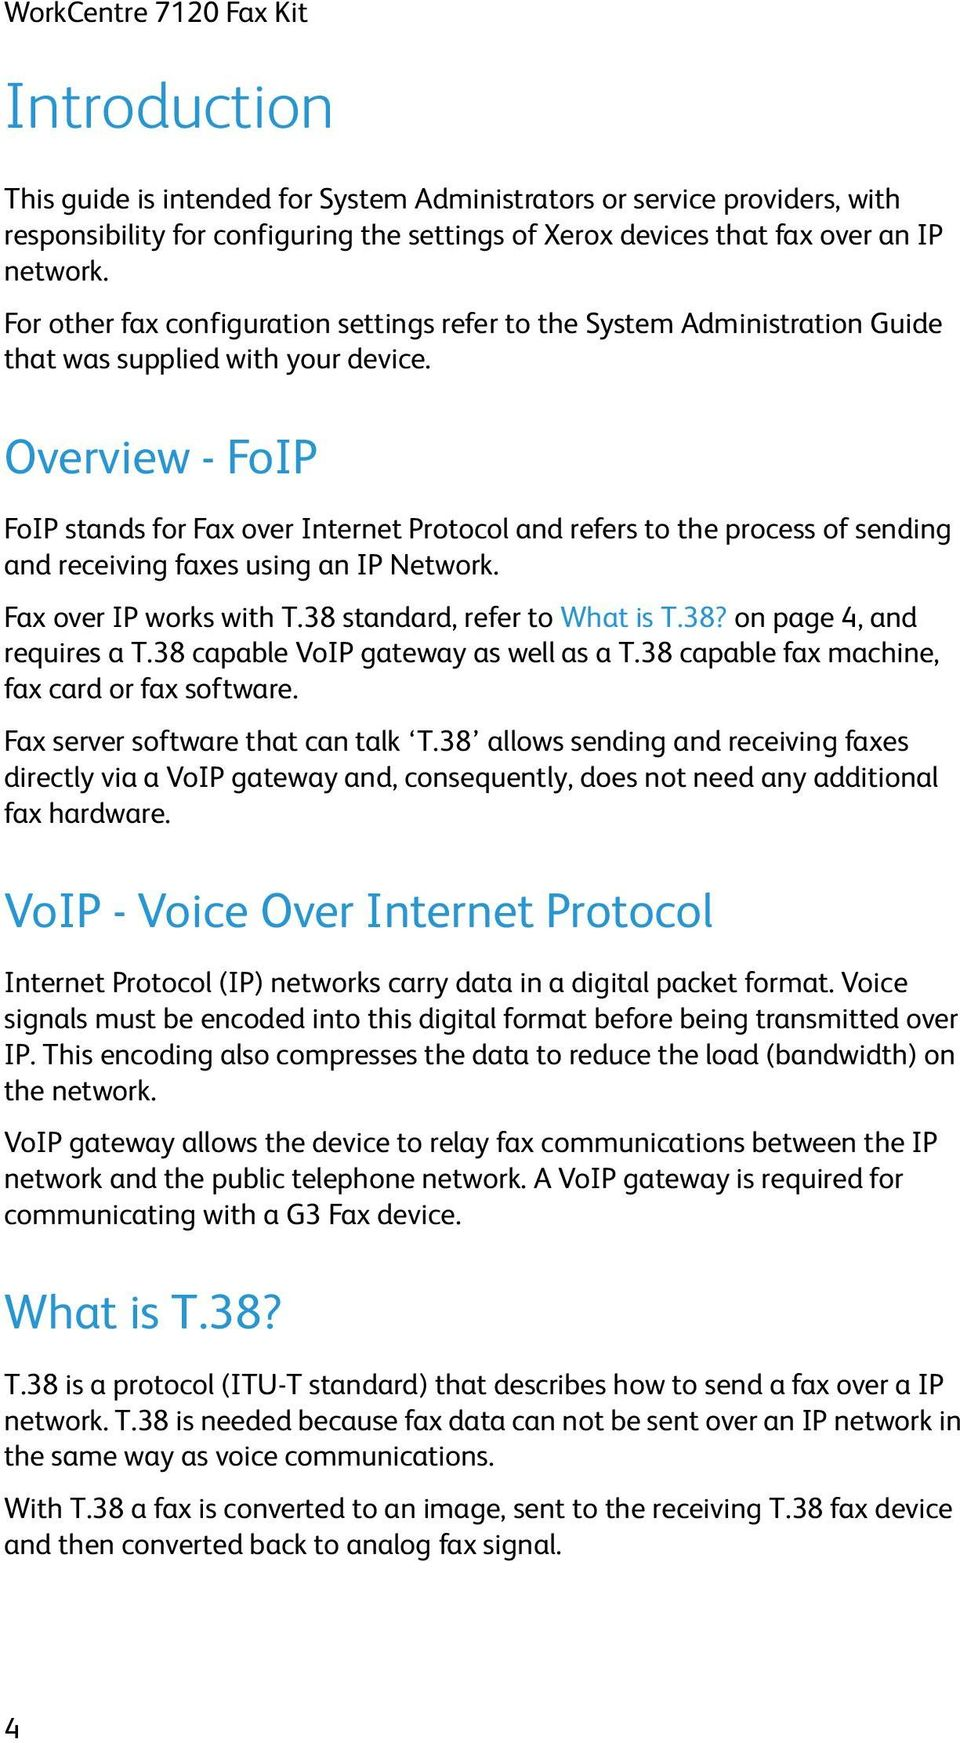 Overview - FoIP FoIP stands for Fax over Internet Protocol and refers to the process of sending and receiving faxes using an IP Network. Fax over IP works with T.38 standard, refer to What is T.38? on page 4, and requires a T.